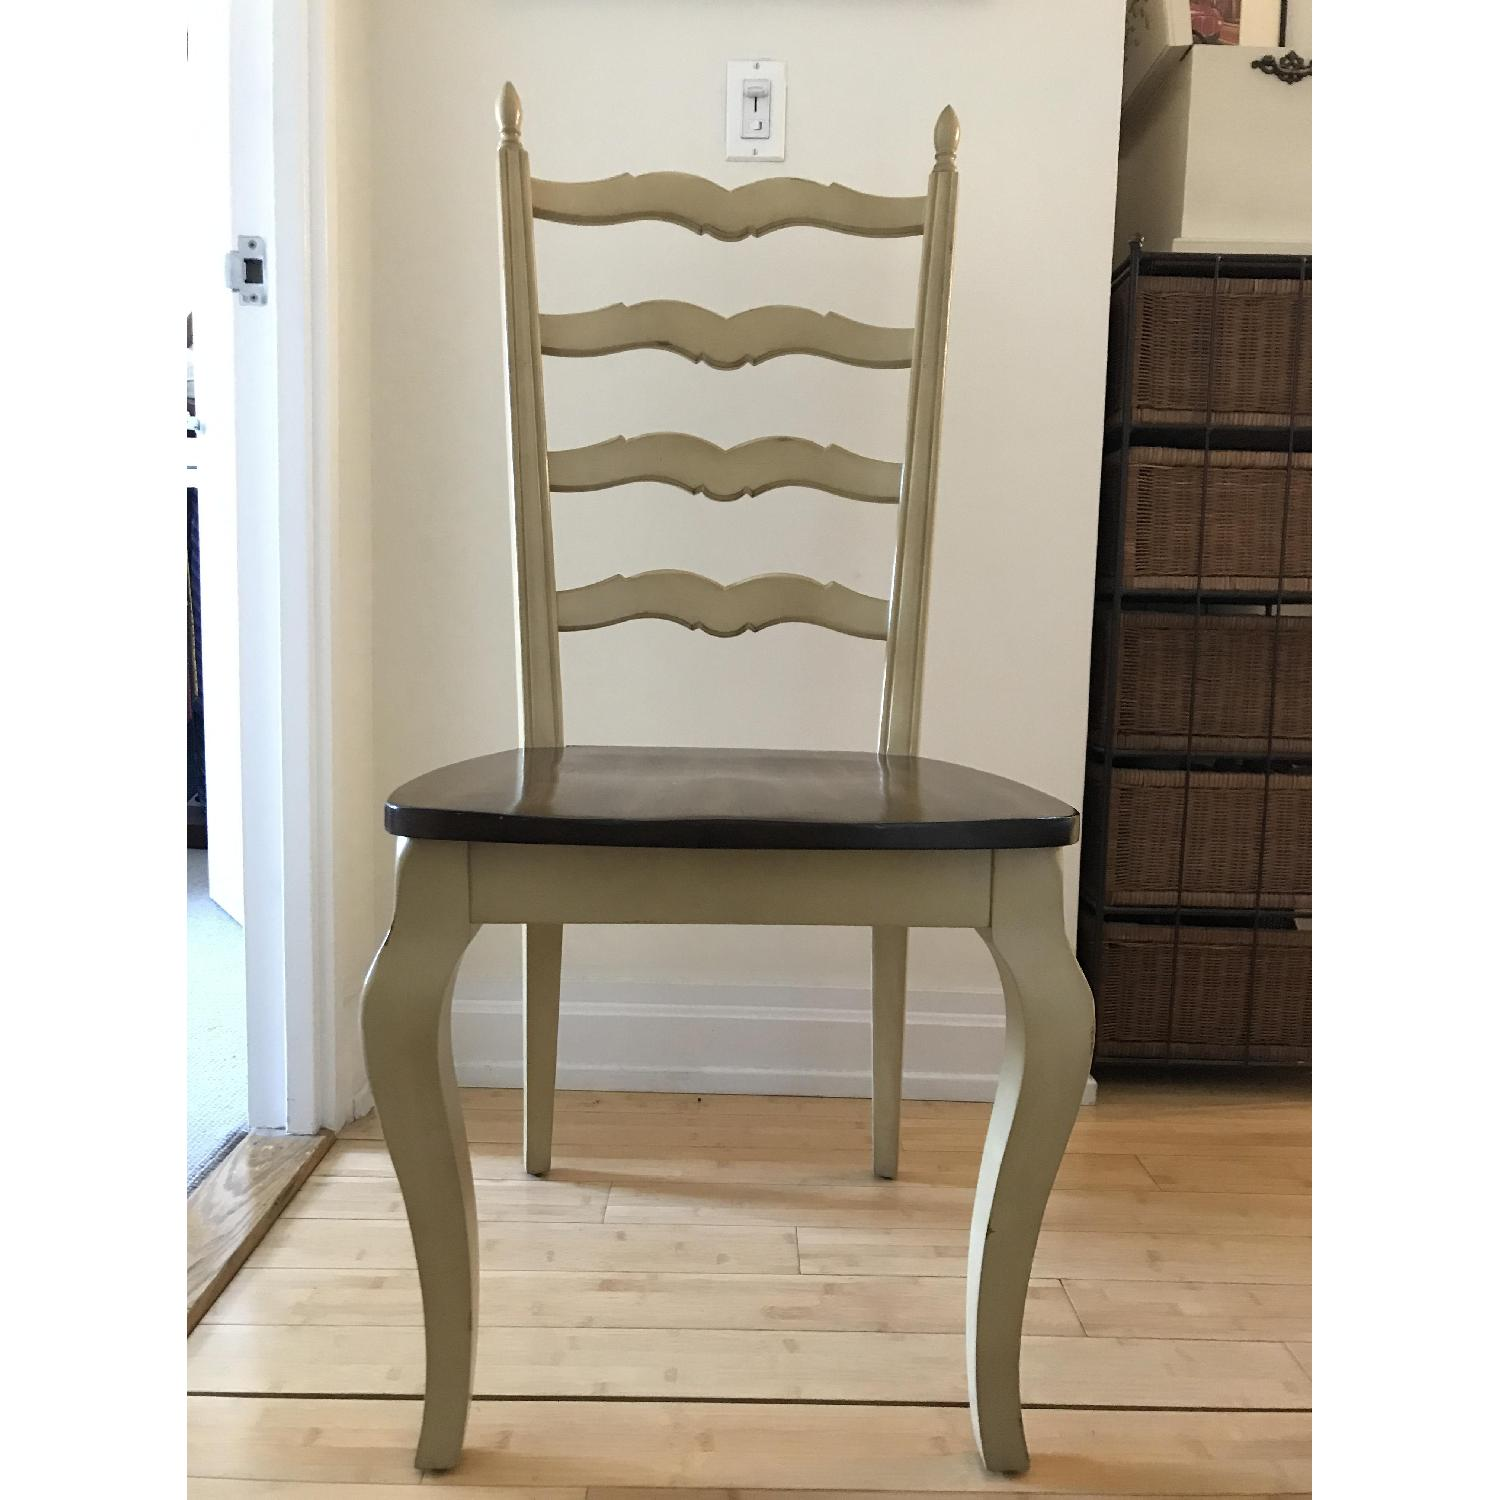 Pier 1 Francesca Antique Ivory Dining Chair-0